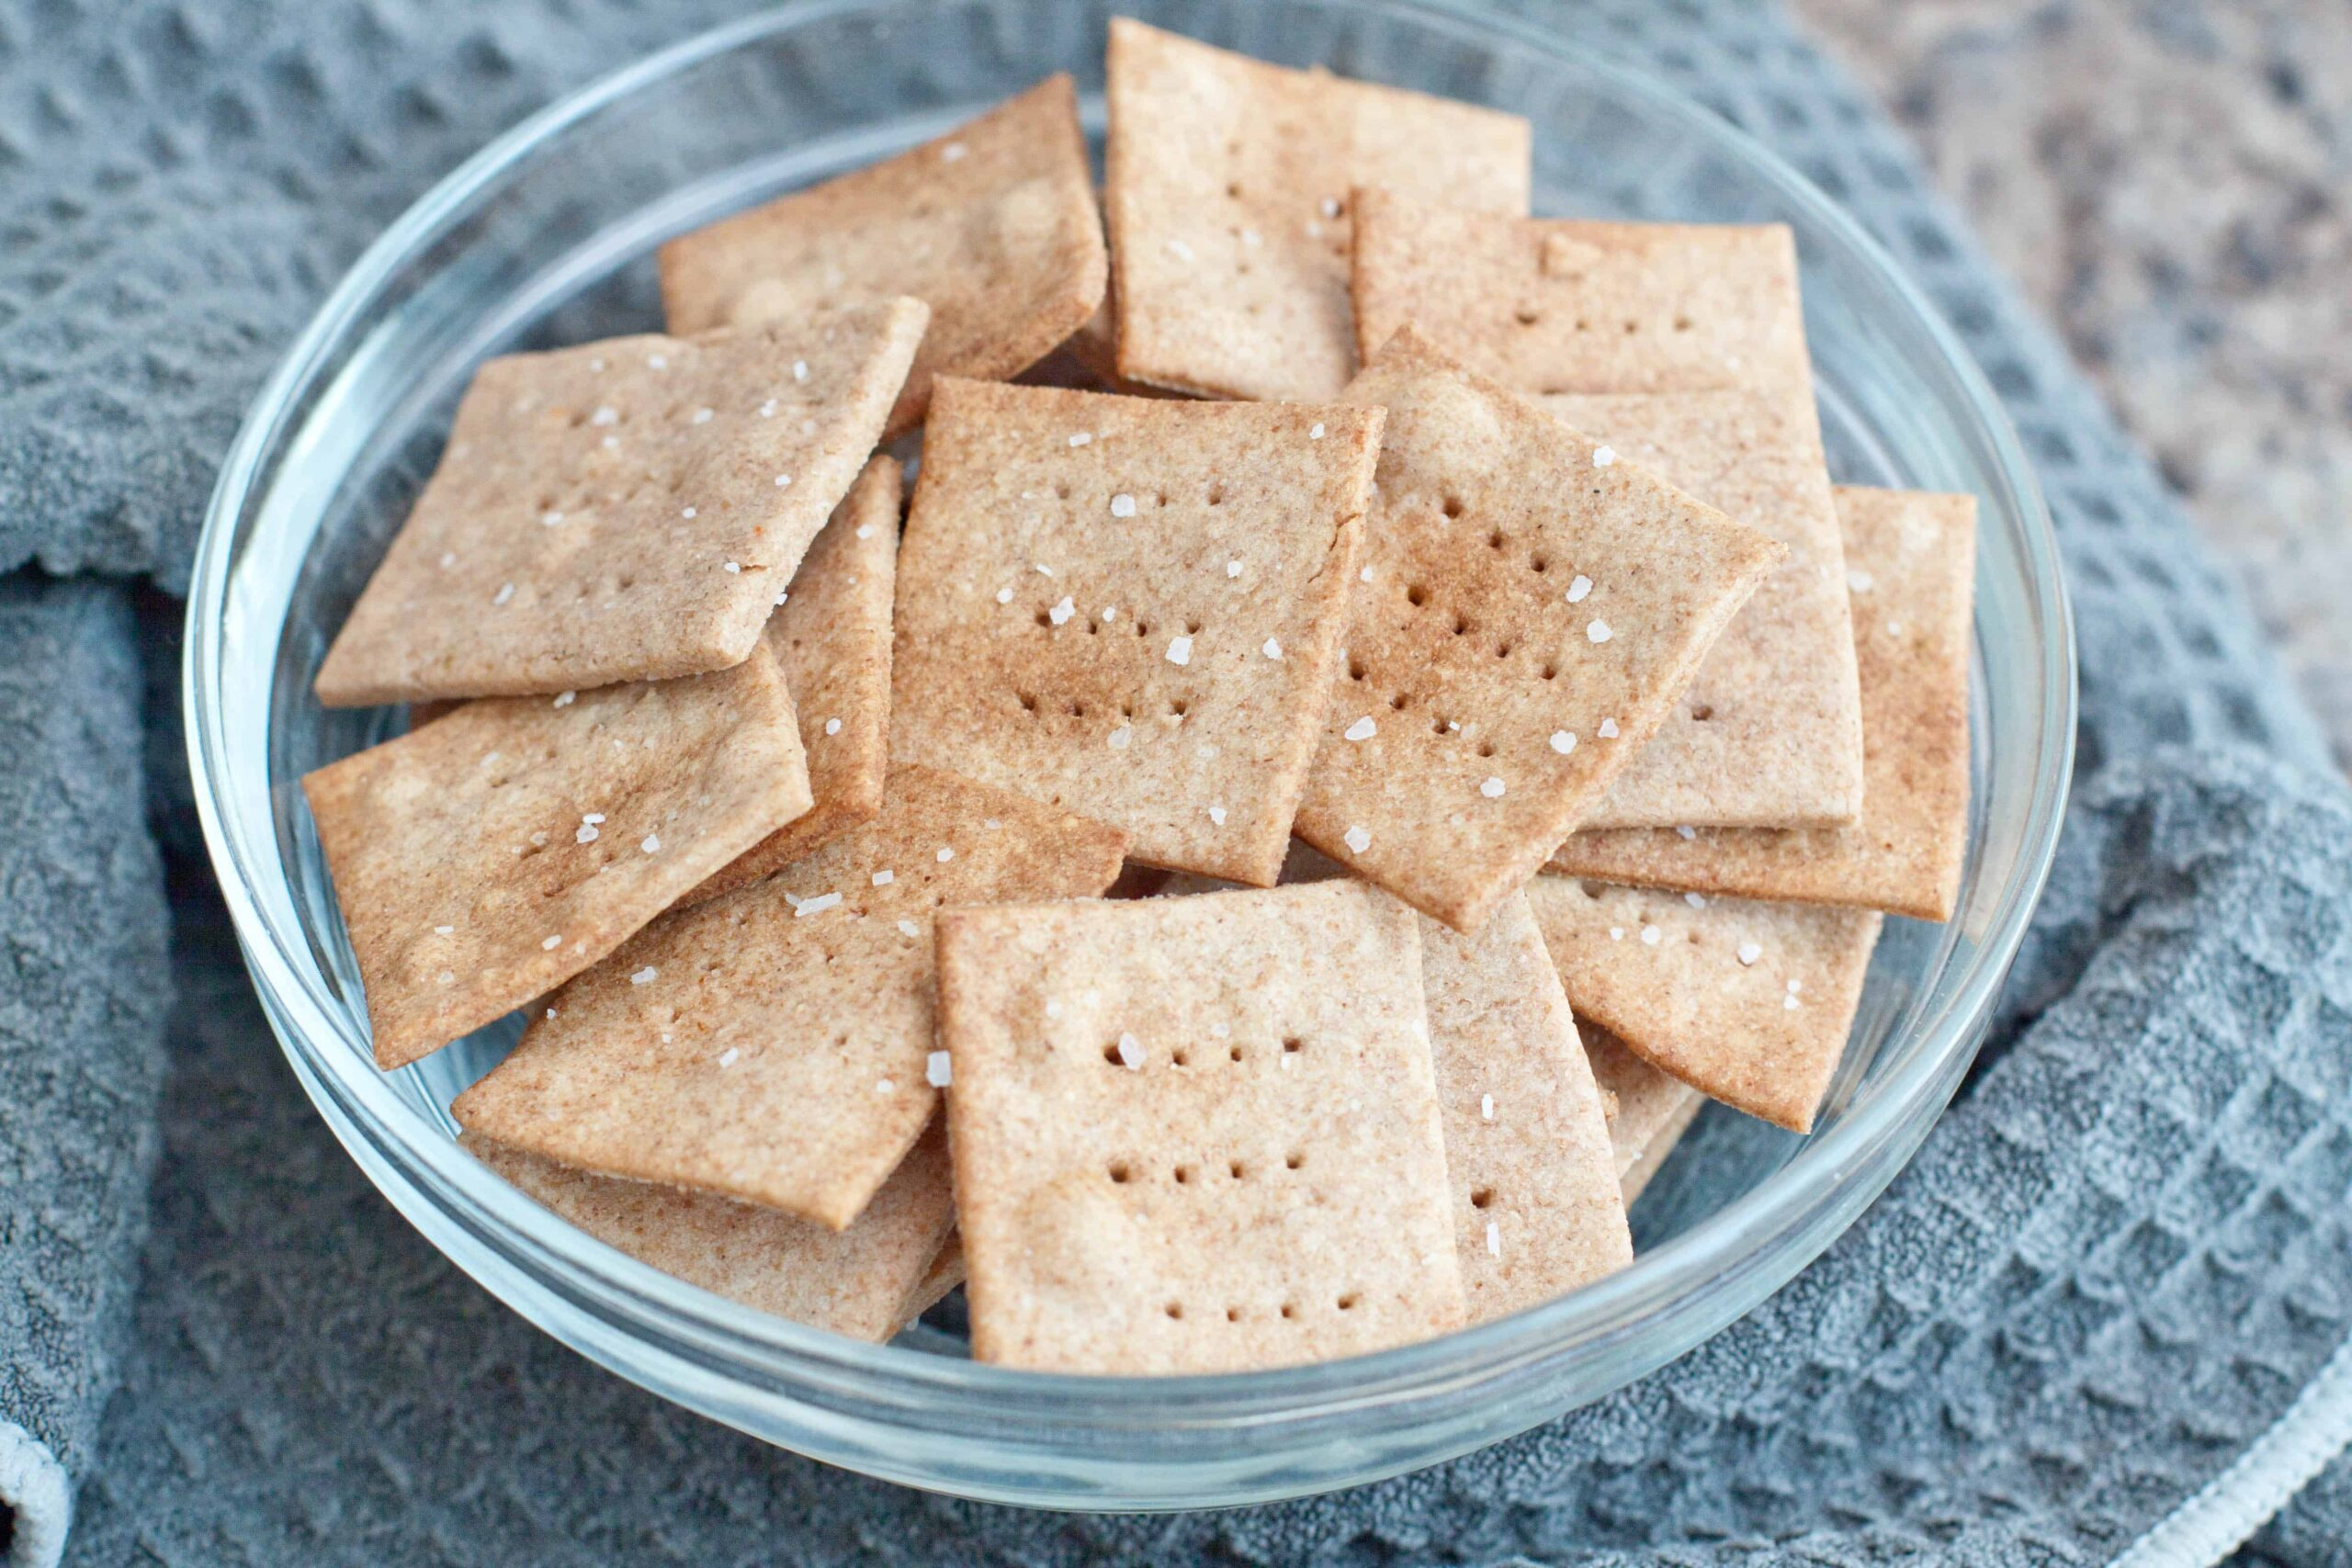 Make your own homemade, easier than you think, Wheat Thins From Scratch with just 6 simple ingredients!